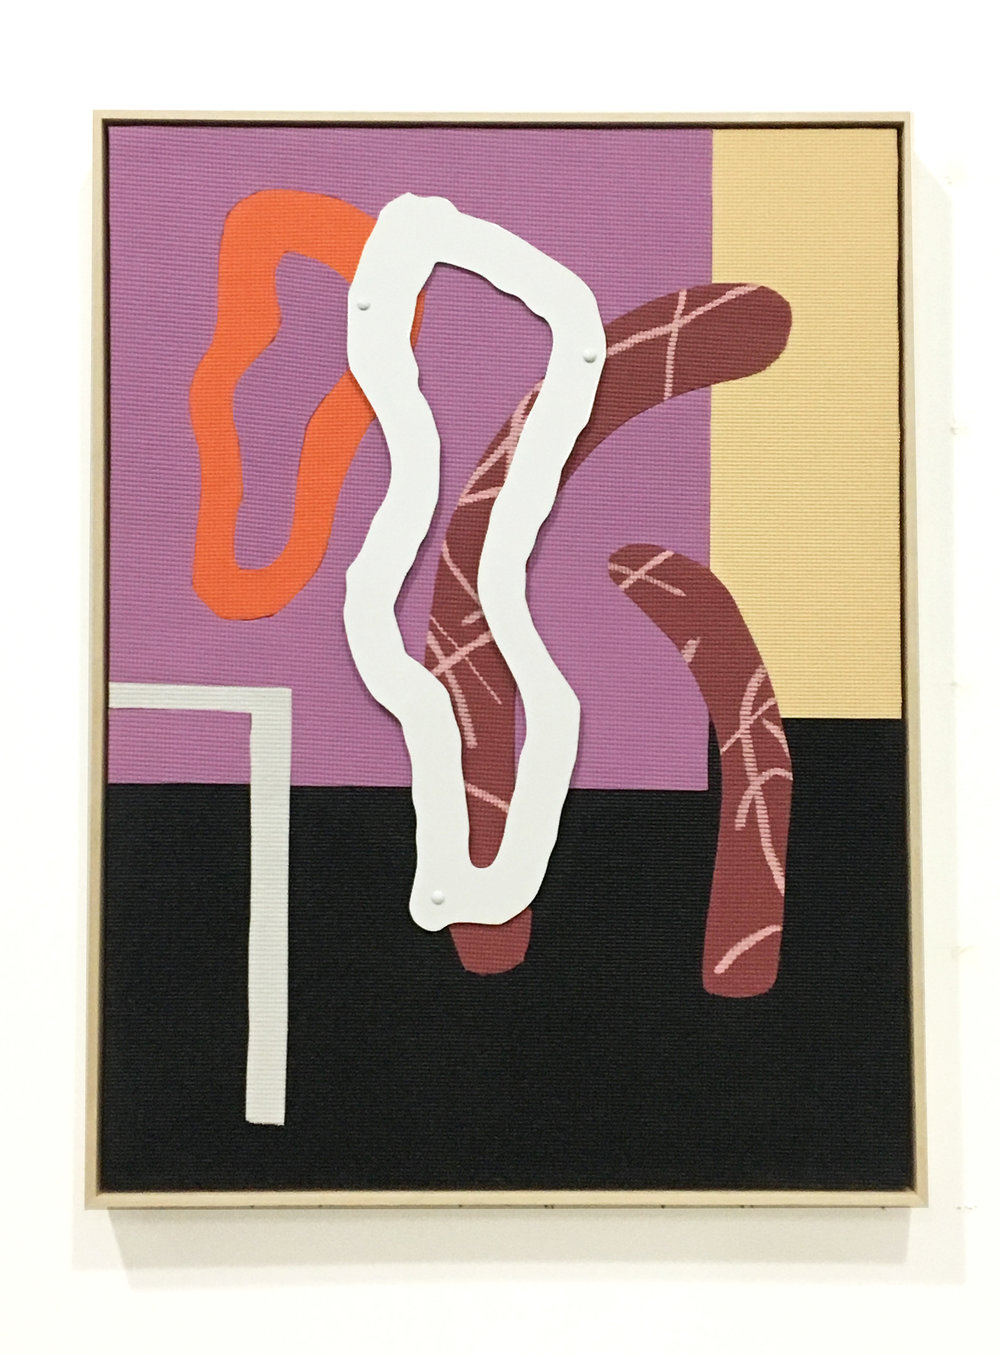 Alex Ebstein,  Court Sports,  201, Hand-Cut PVC Yoga Mats, Acrylic, Powder Coated Aluminum and Hardware on Wood Panel, 40 x 30 inches